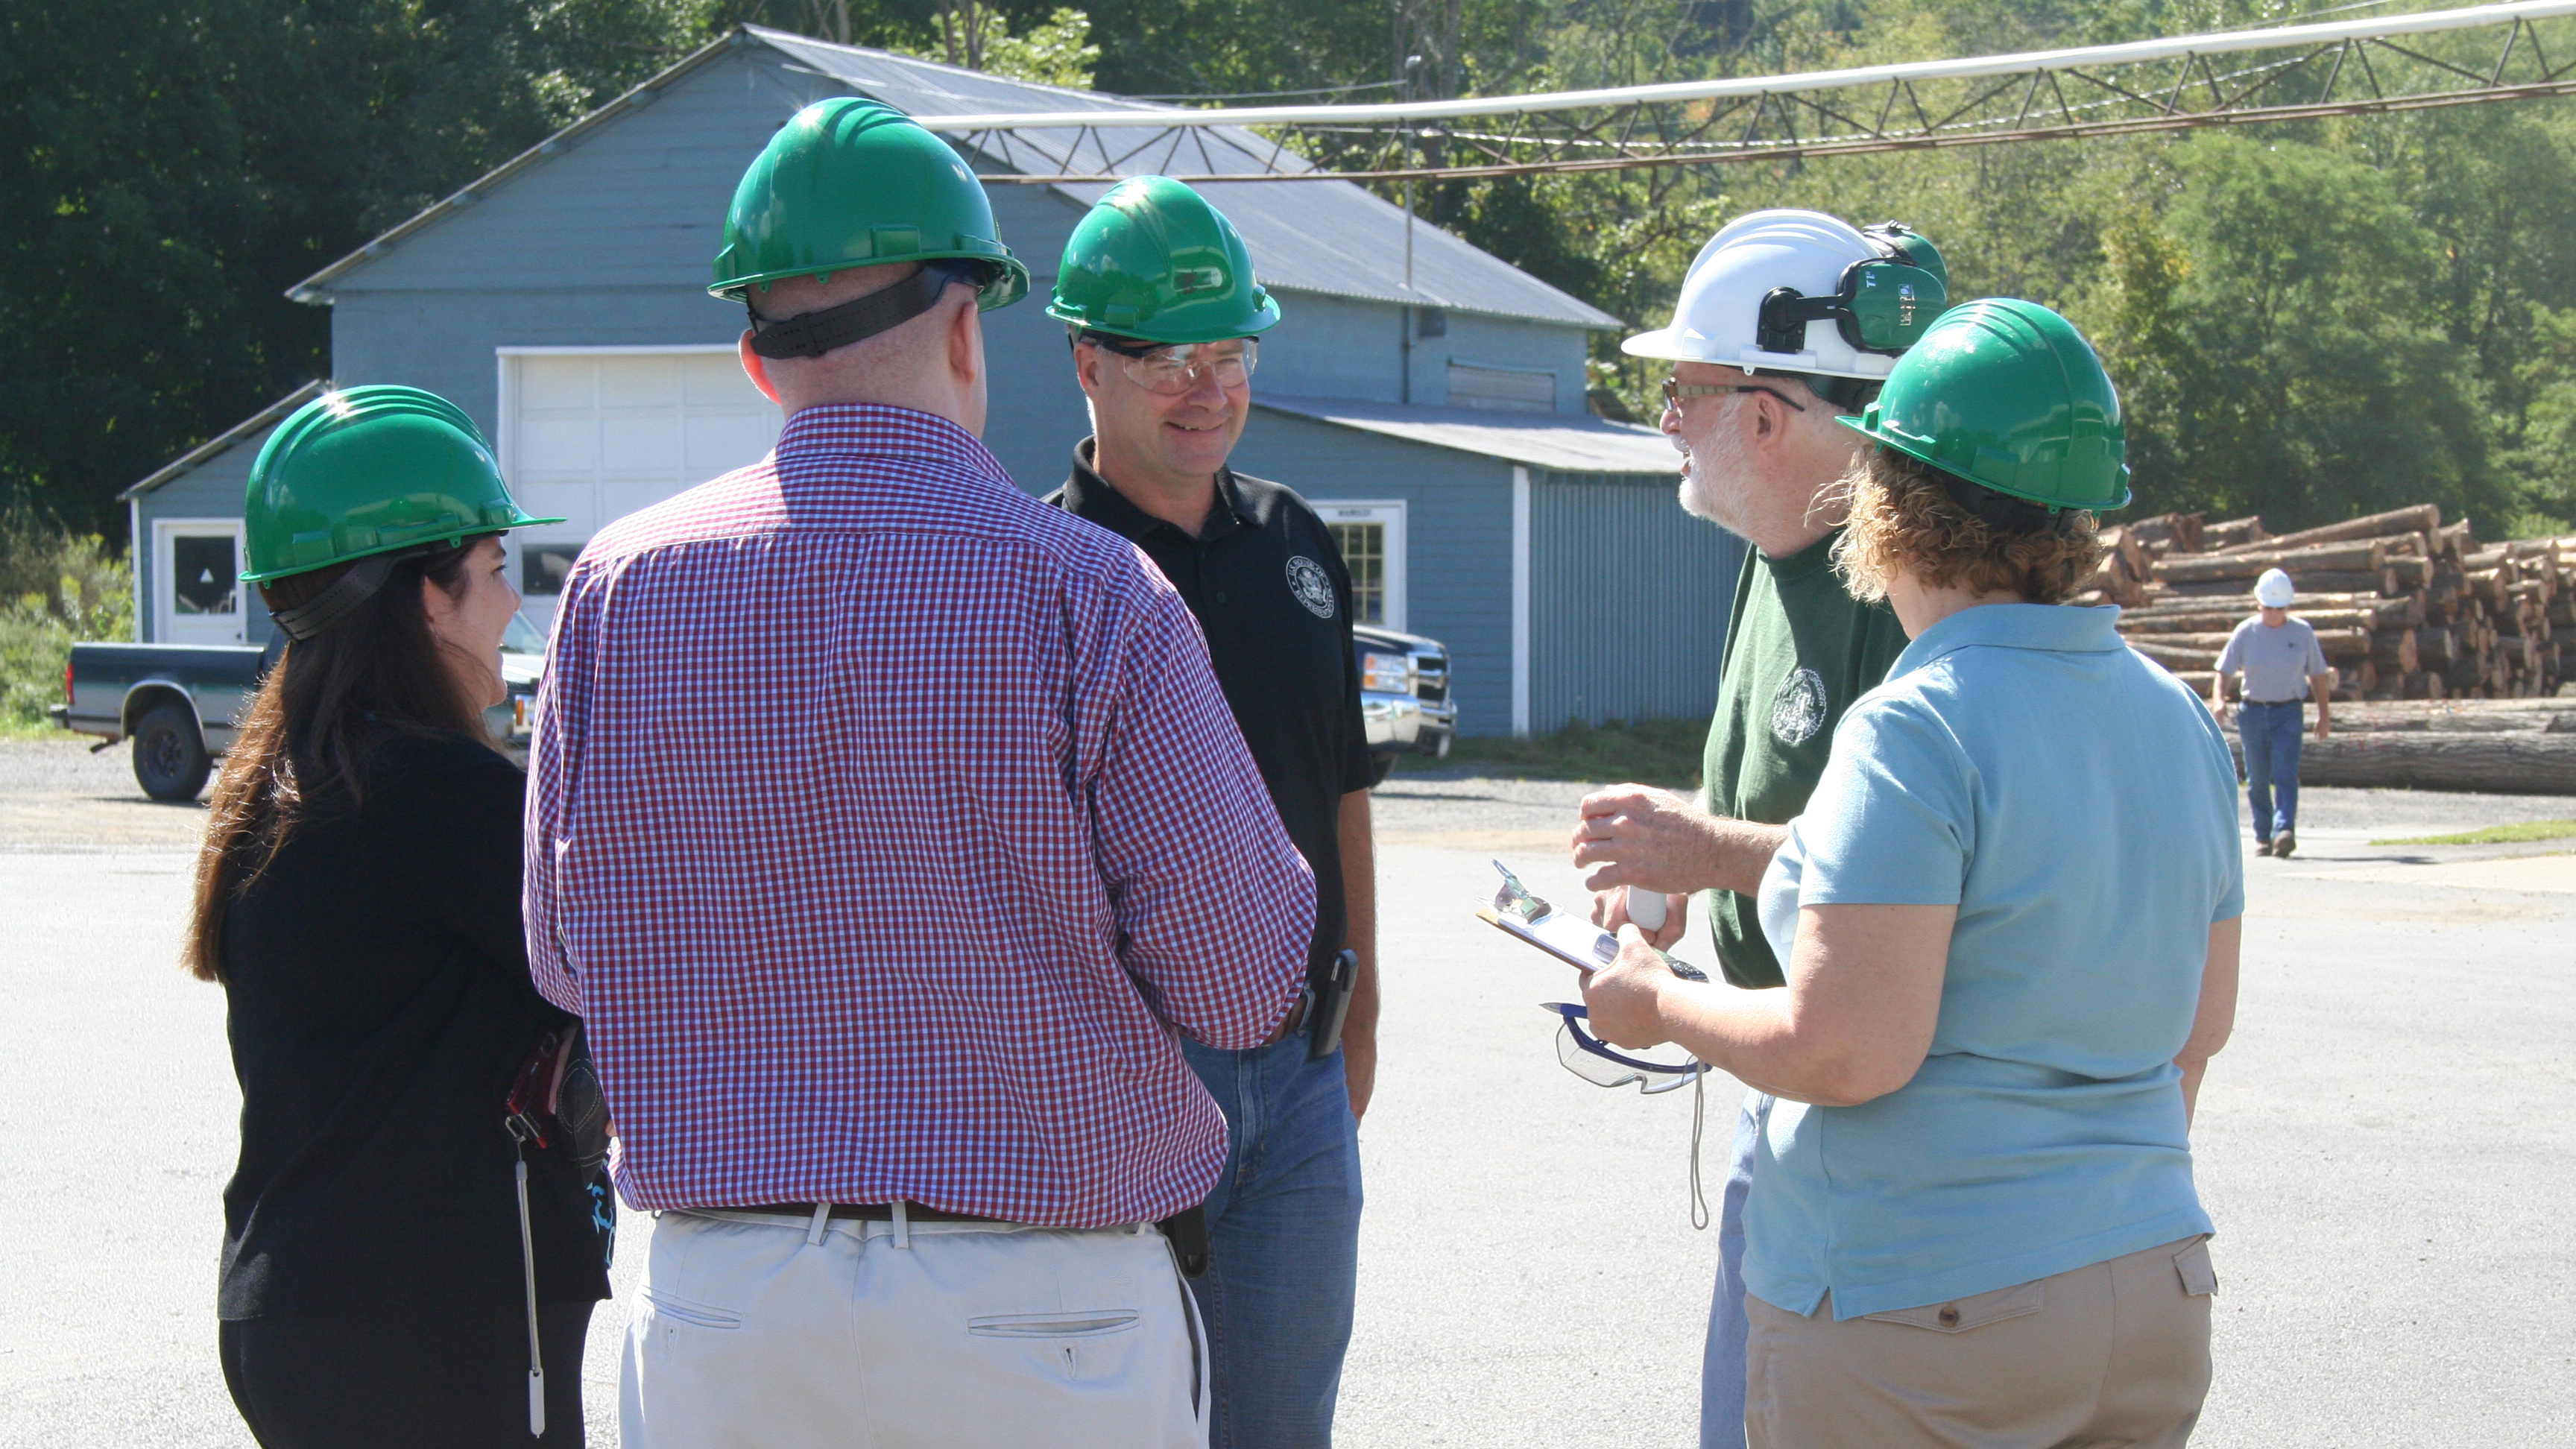 Rep. Chris Gibson of New York (R, 19th District), lead co-sponsor of the POWER Act, joins Pew's Jessica Lubetsky on a tour of a waste heat to power project at Wightman Lumber in Portlandville, New York (Aug. 29, 2014).